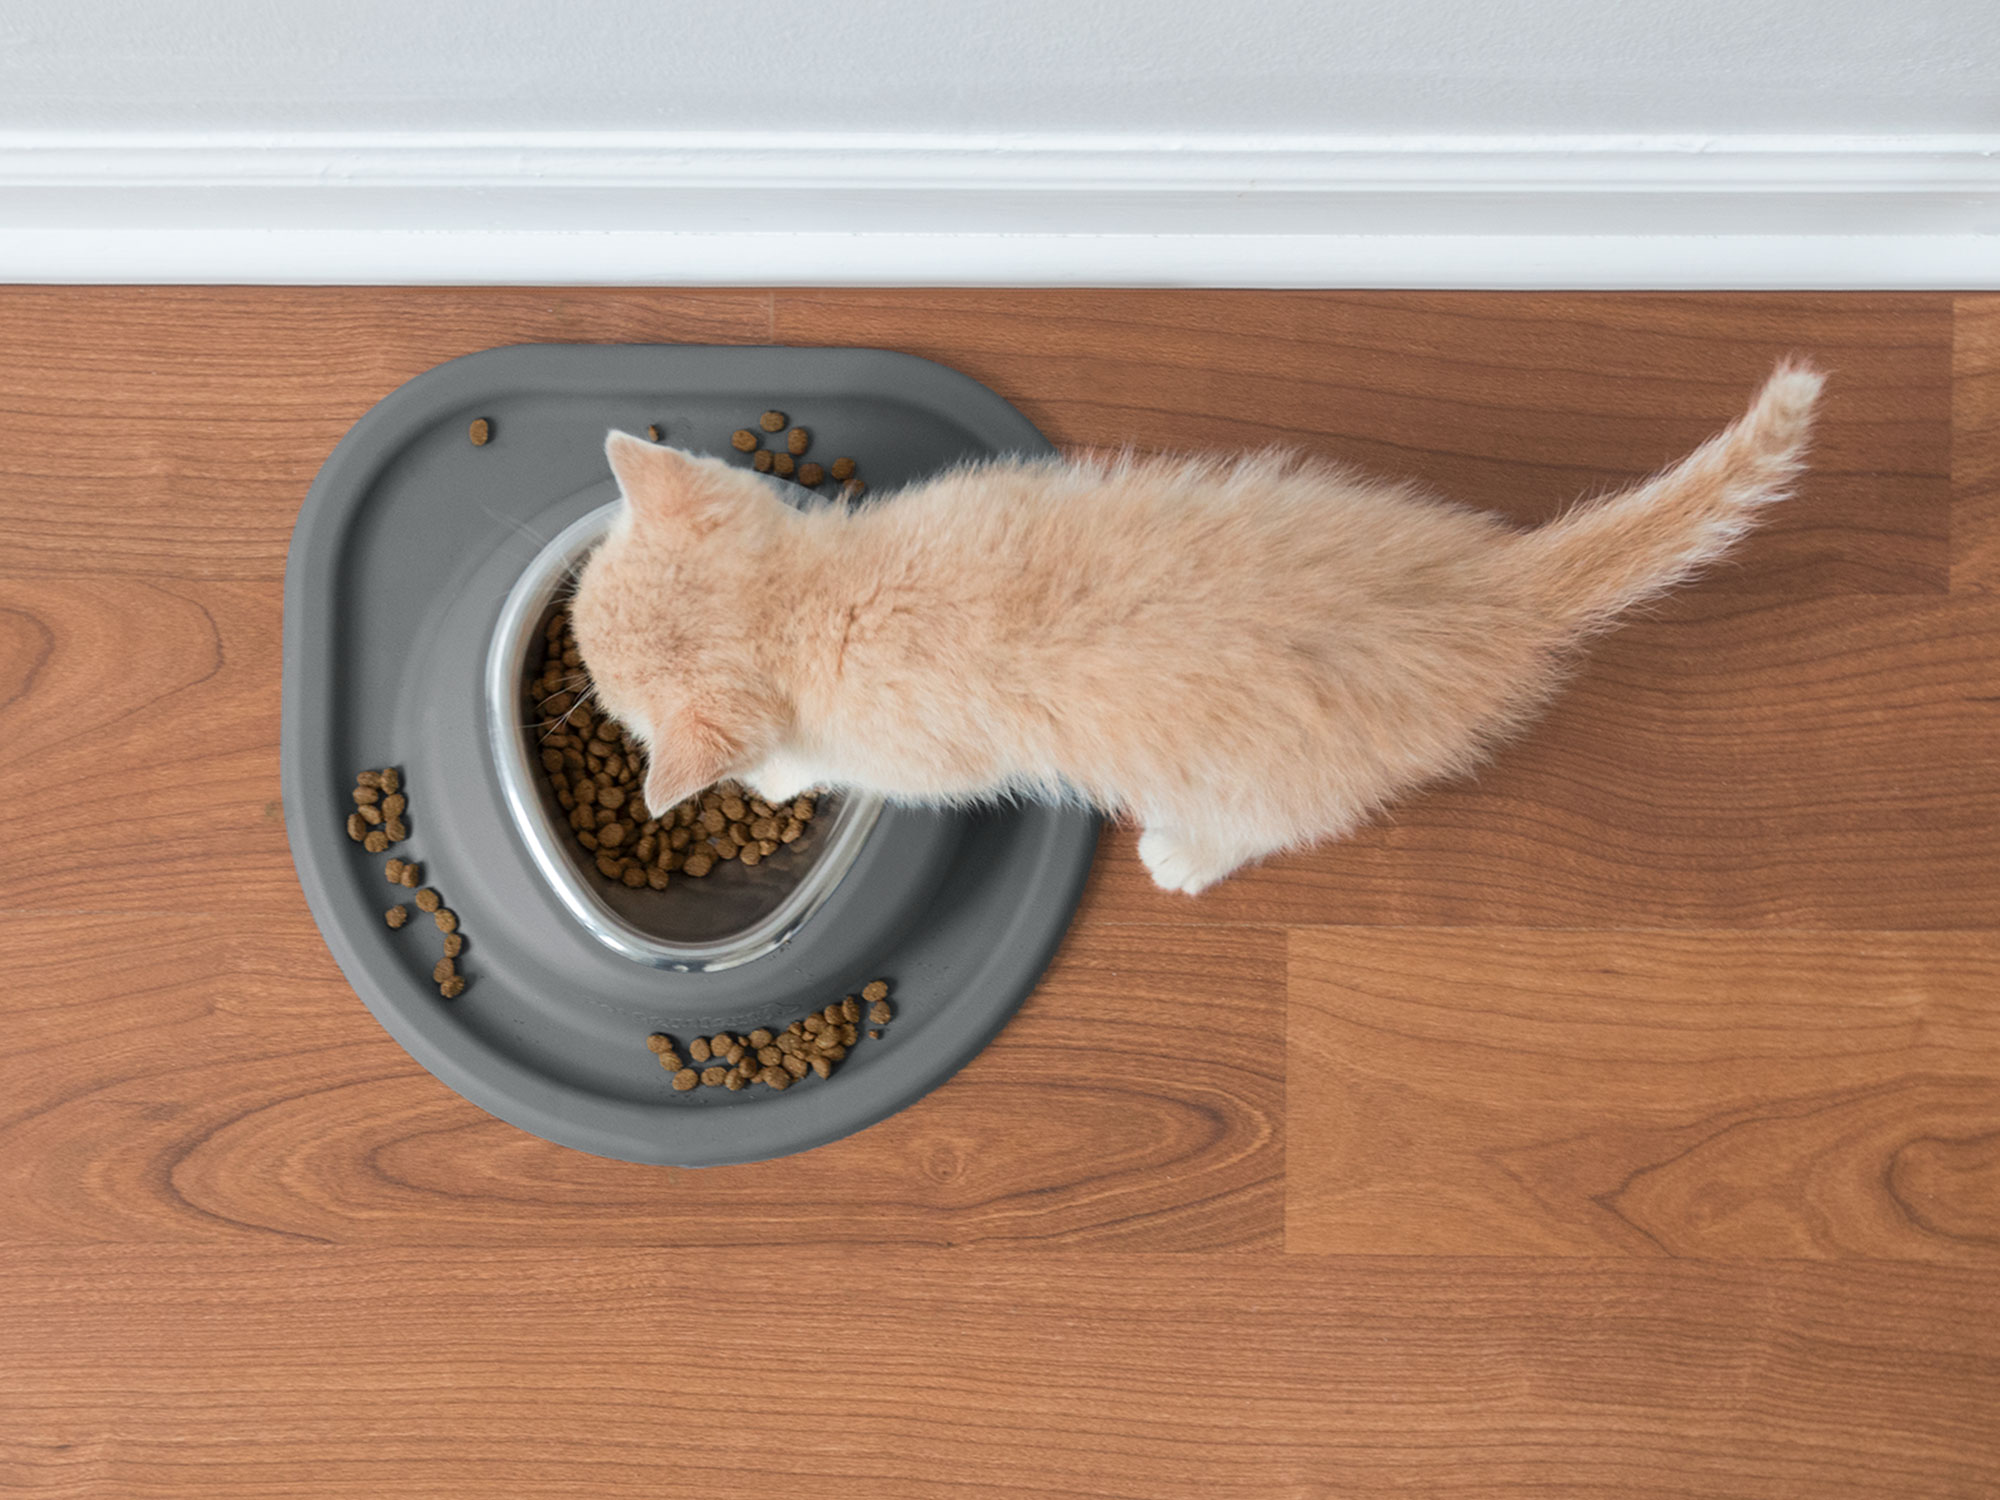 Perfect for cats! Smaller sizes work perfect as cat bowls.